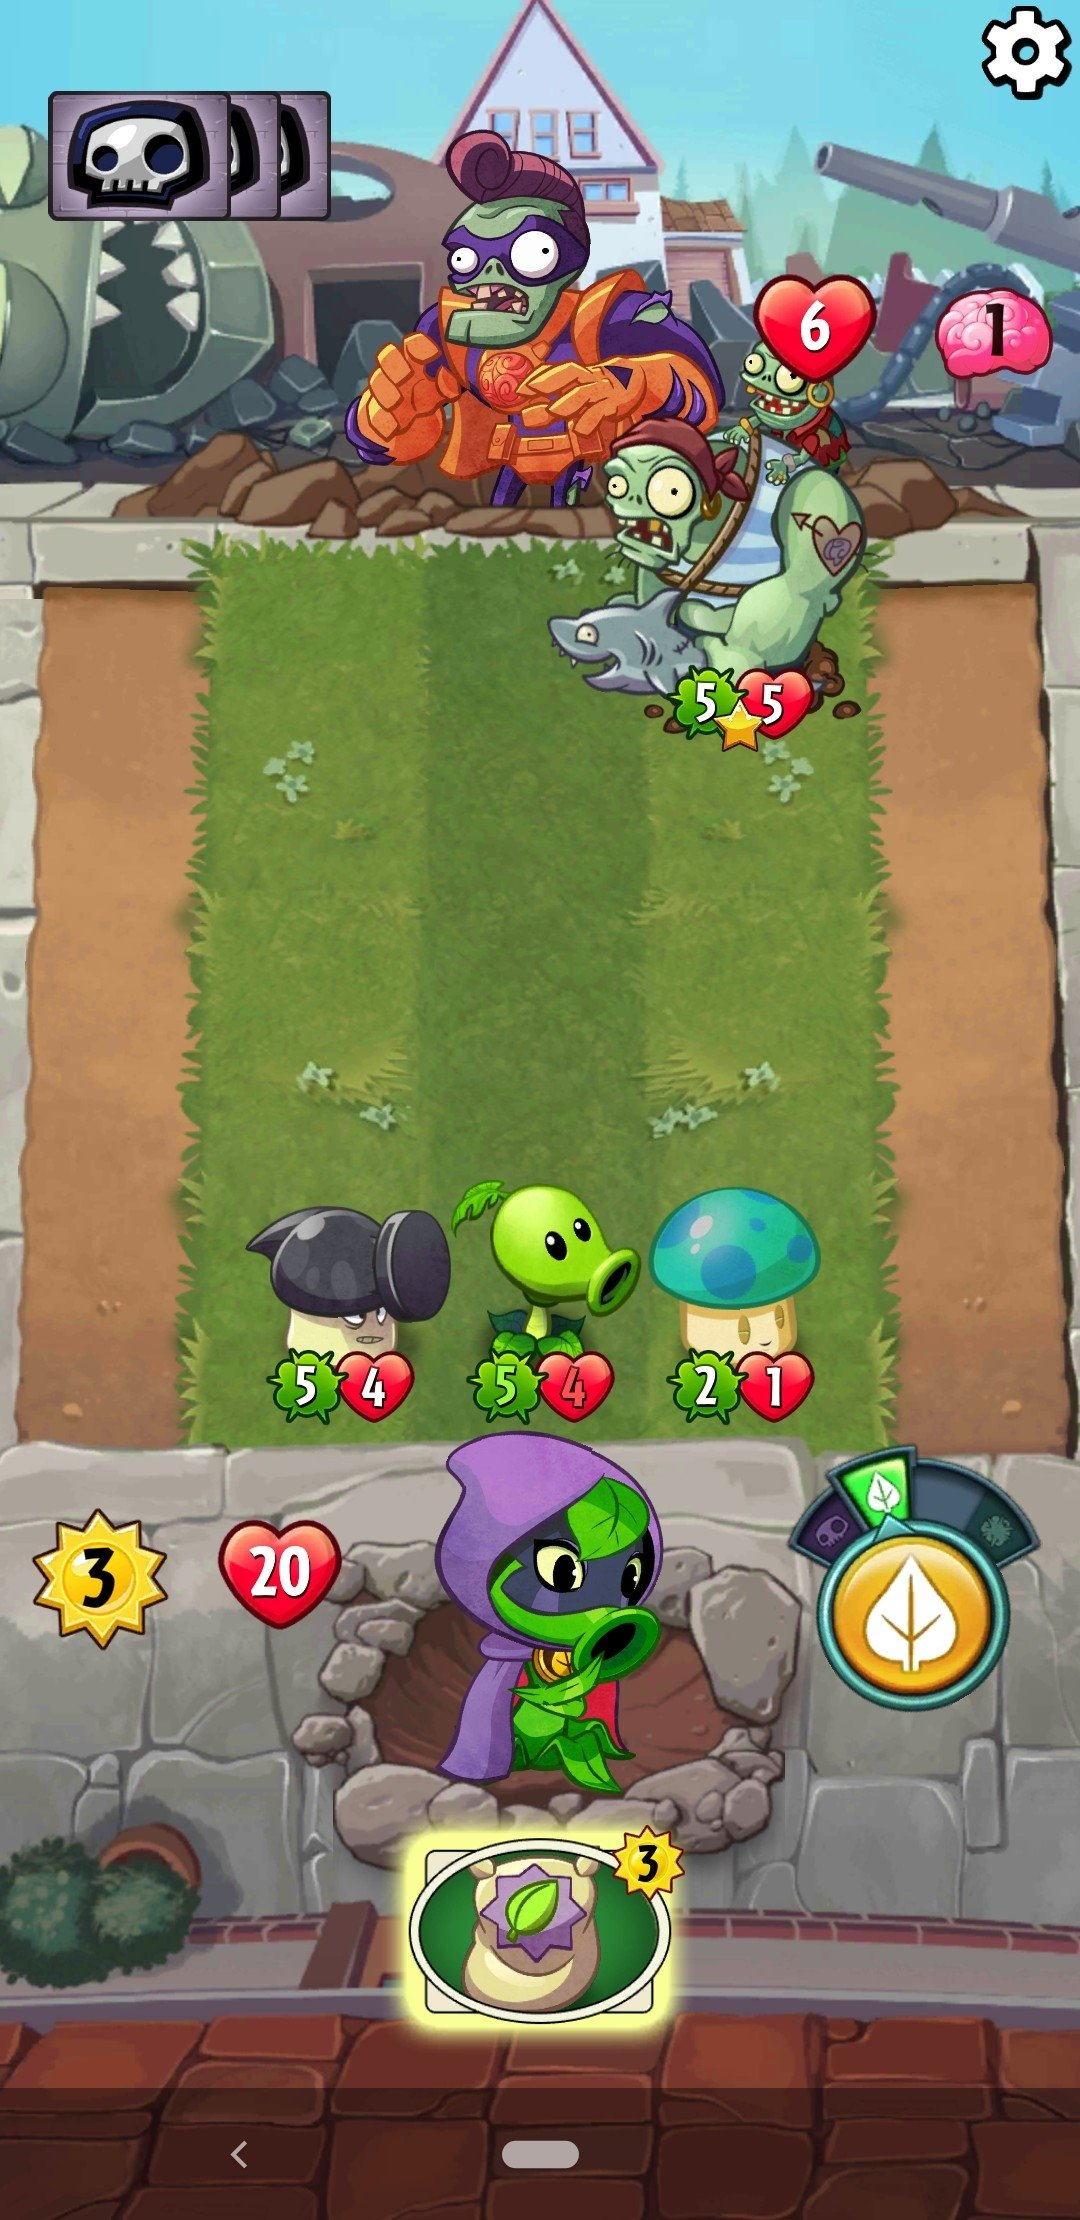 Plants vs. Zombies Heroes Android image 8